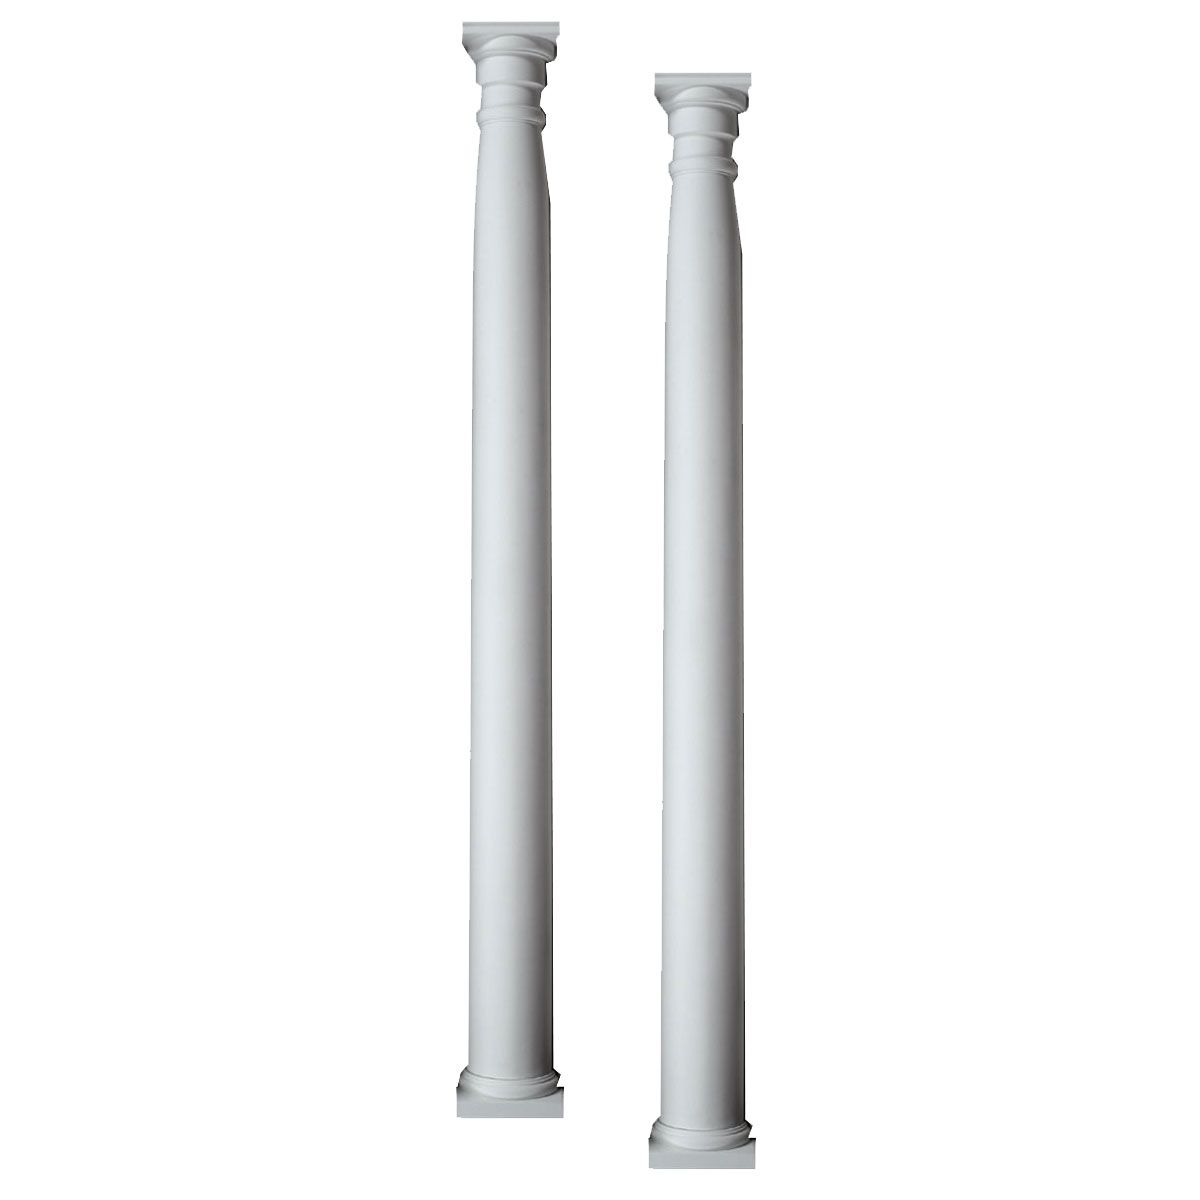 10 3 8 Inch W X 96 Inch H X 6 Inch P Half Round Column Pilaster Adjustable From 80 Inch To 96 Inch Set Of 2 Porch Columns Column Covers Column